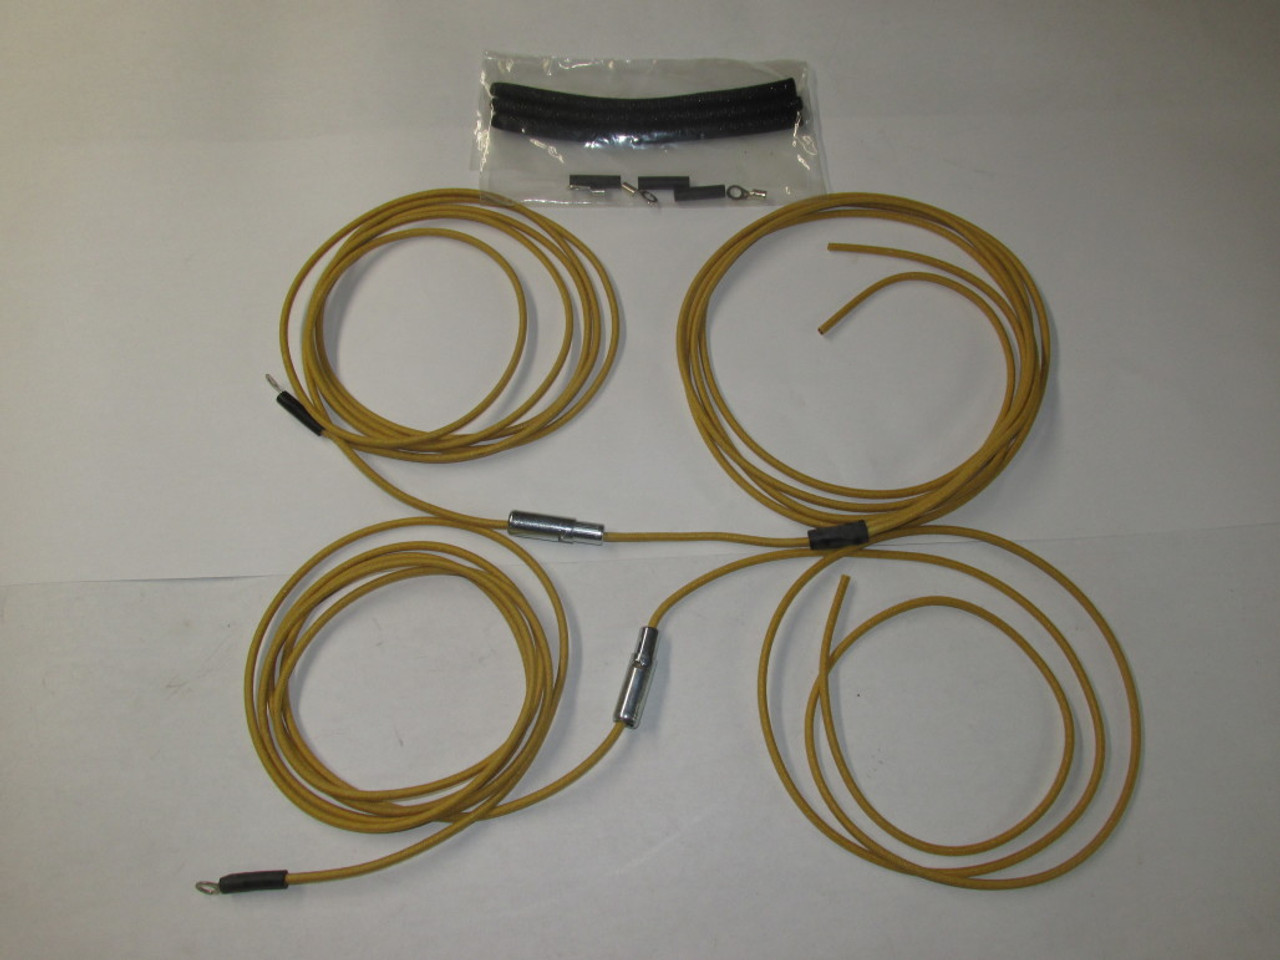 66/77/88 Light harness early 3 light system